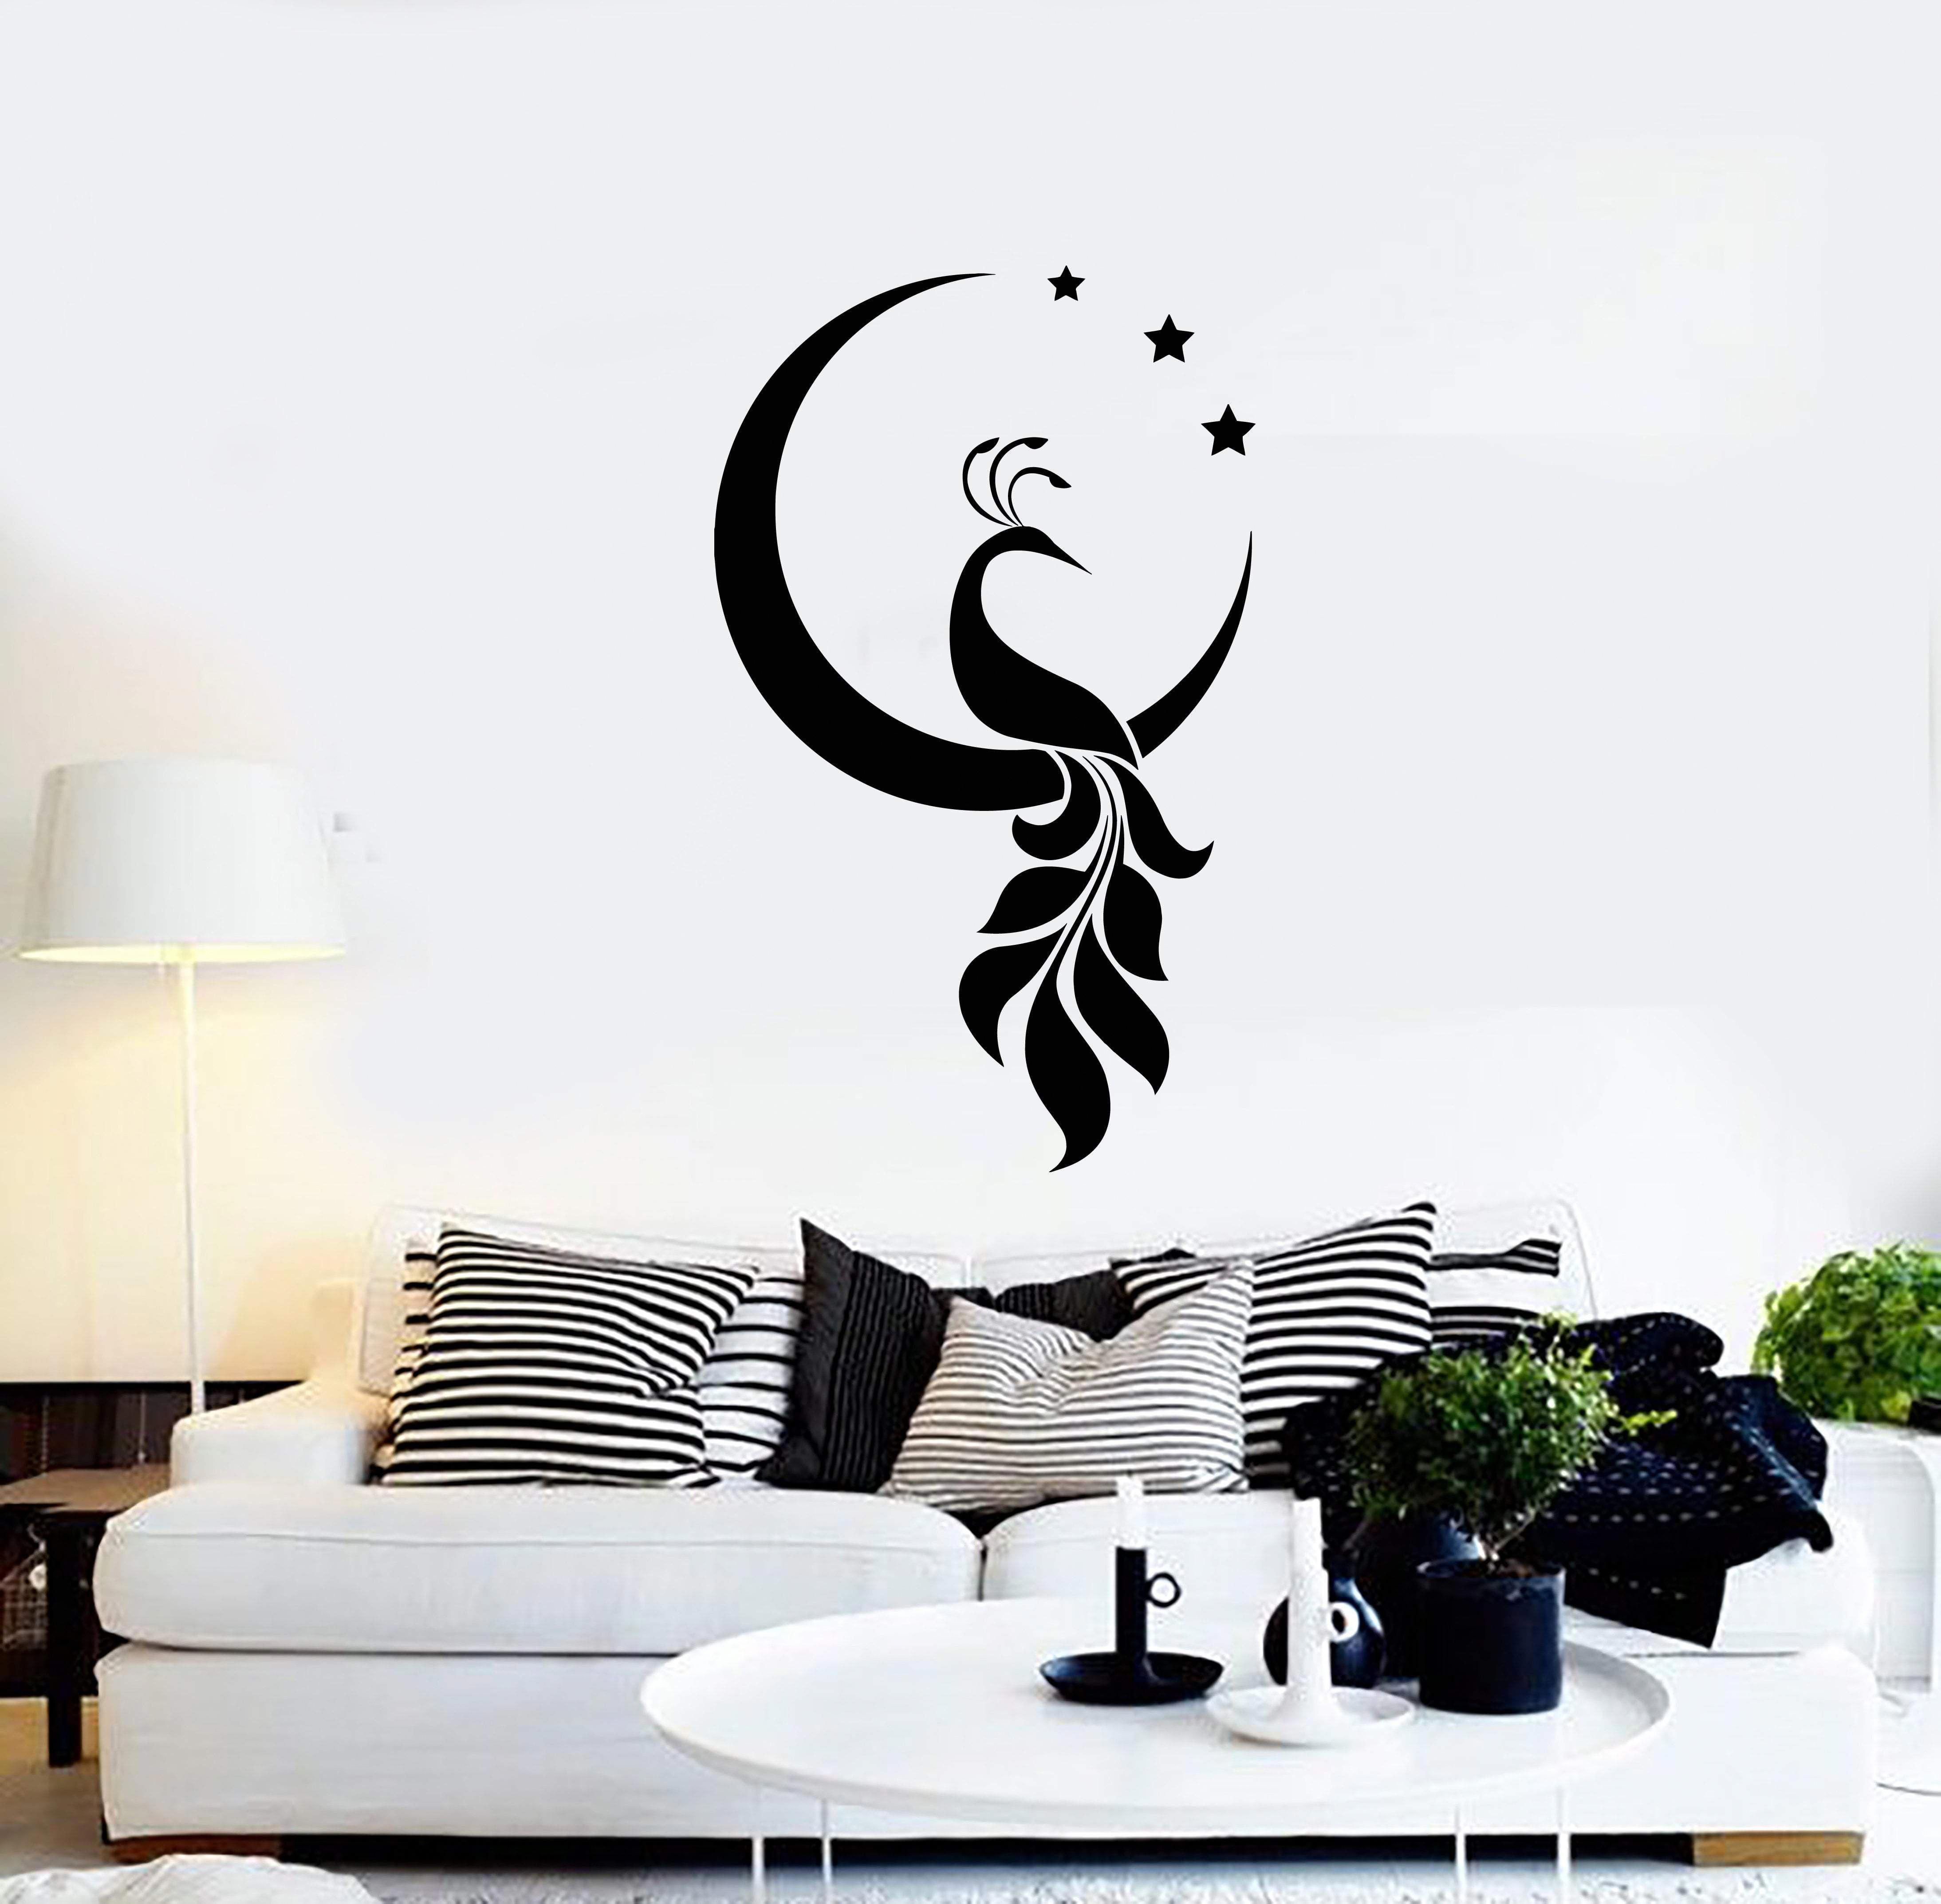 01 Gorgeous Wall Painting Ideas That So Artsy Contemporary Home Decor Home Decor Wall Design